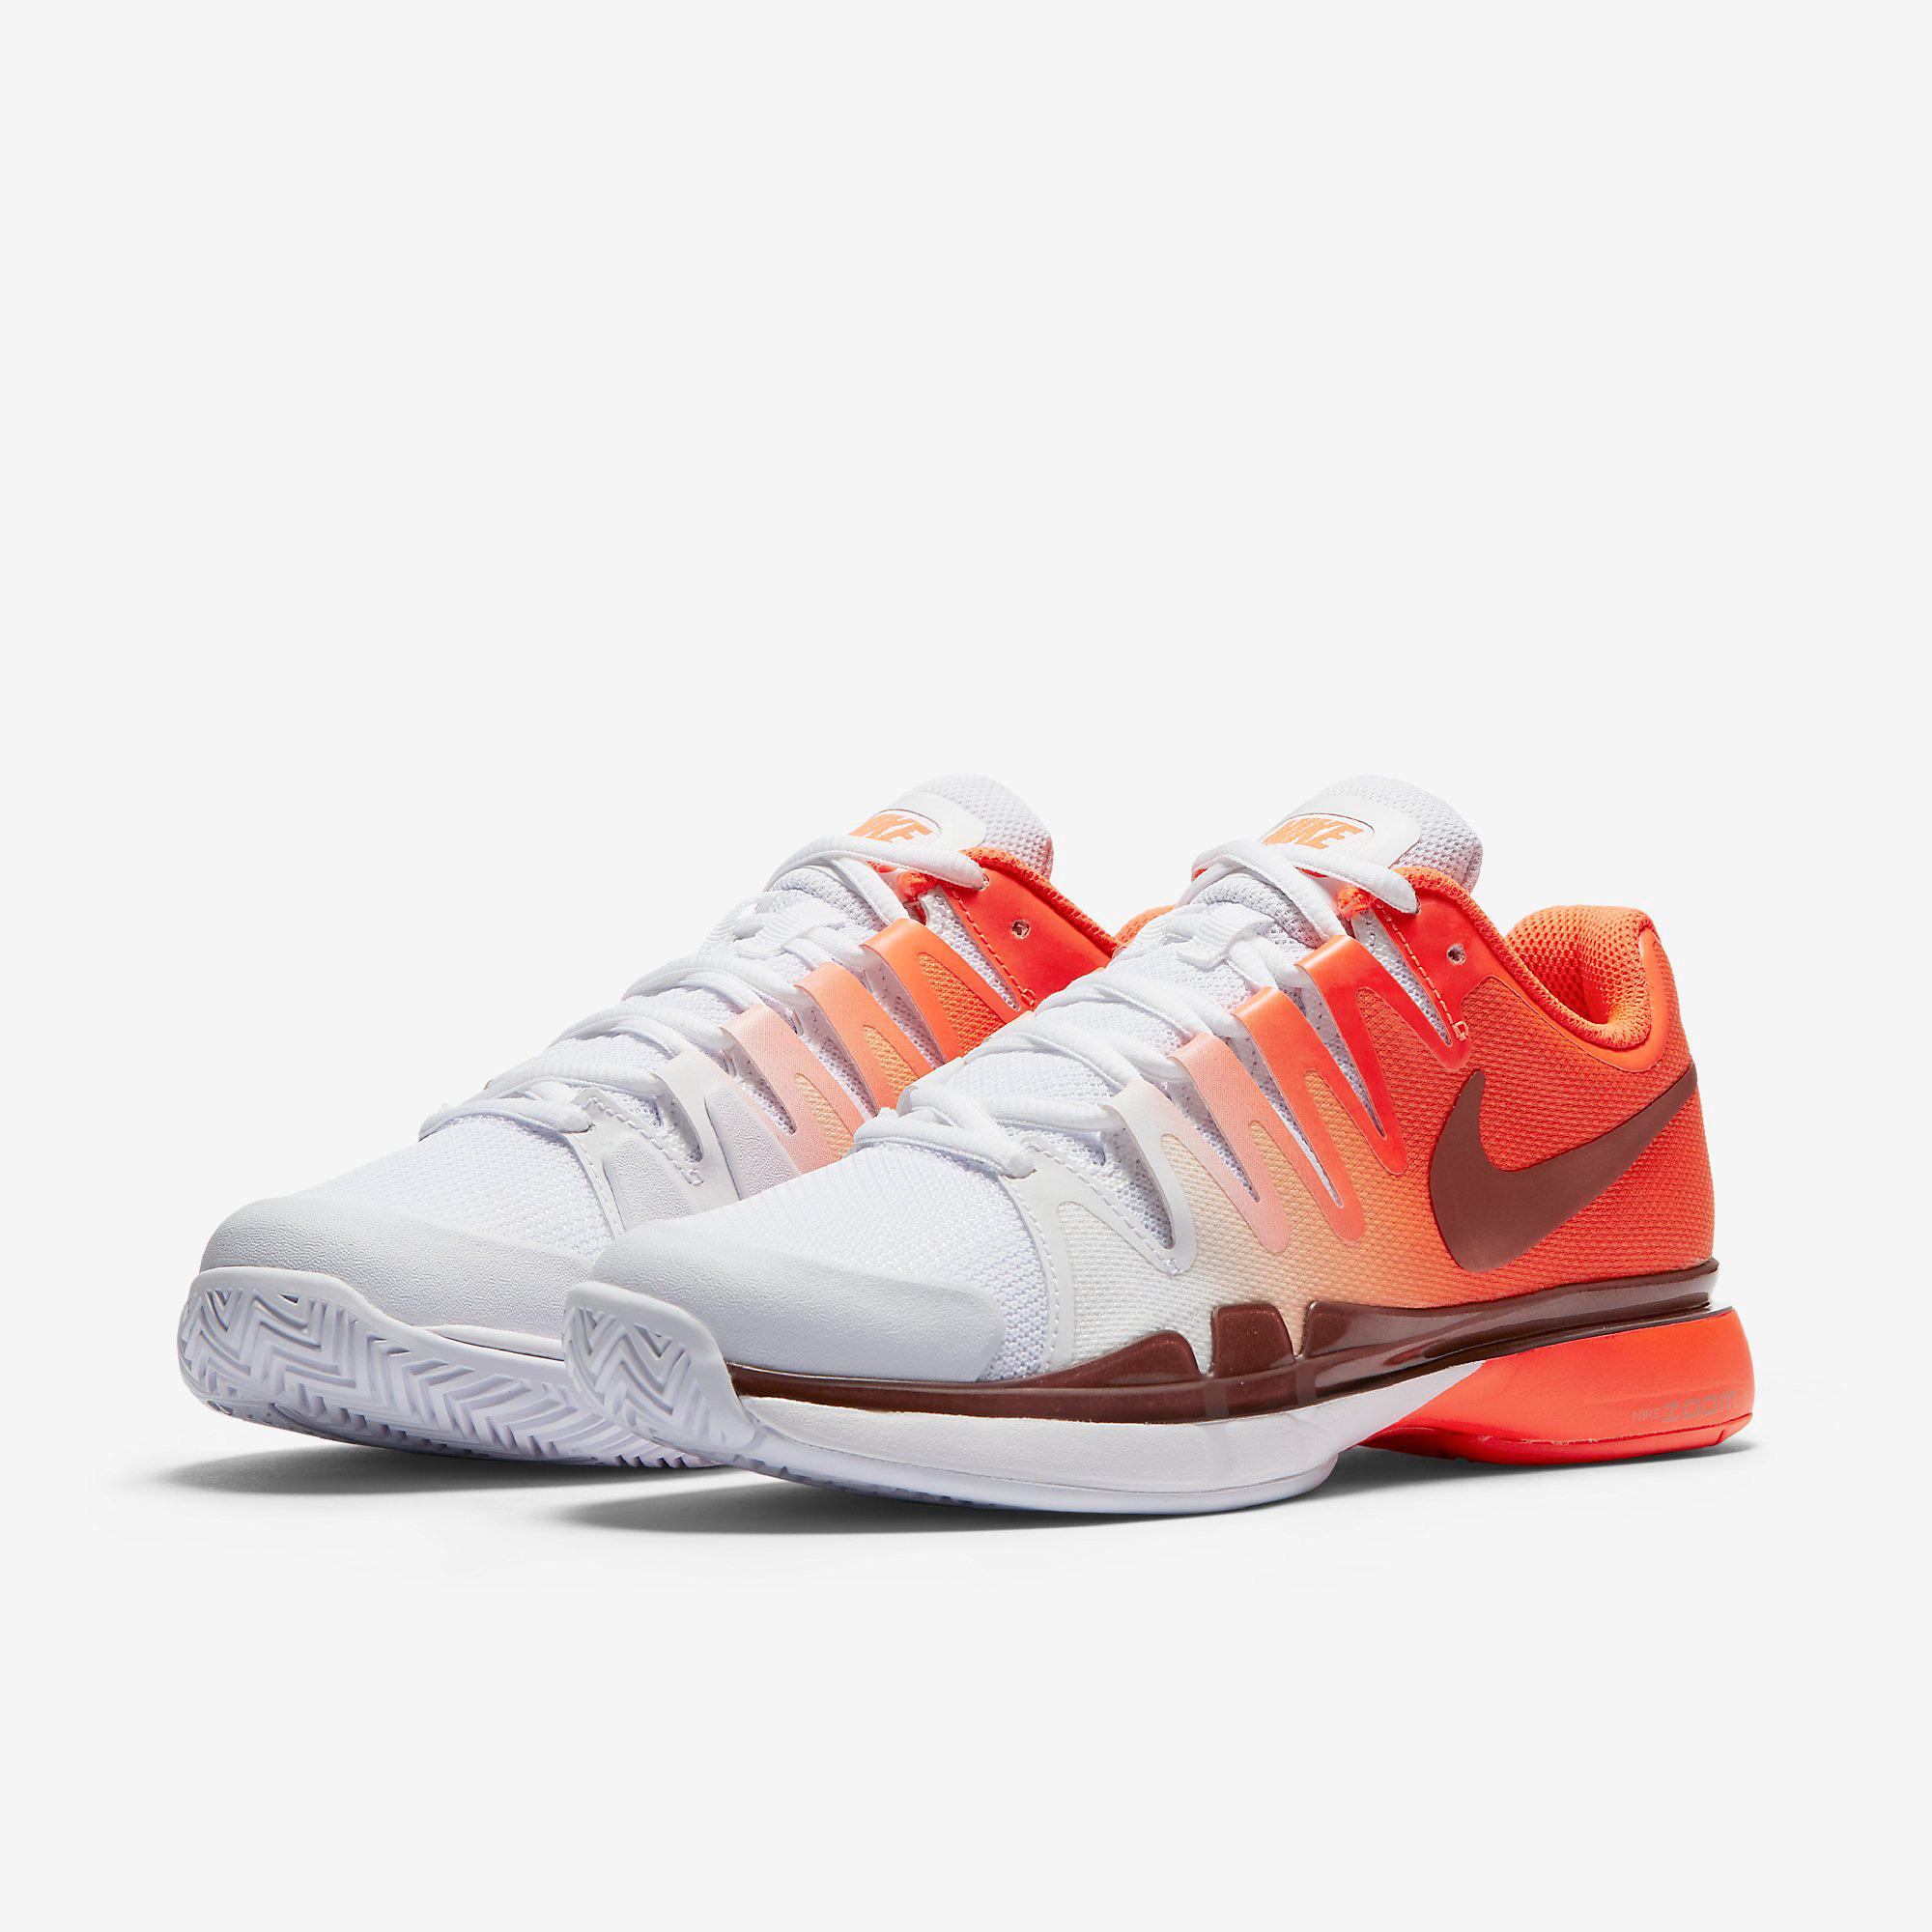 d7ba8b84ed53 Nike Womens Zoom Vapor 9.5 Tennis Shoes - Total Crimson White ...